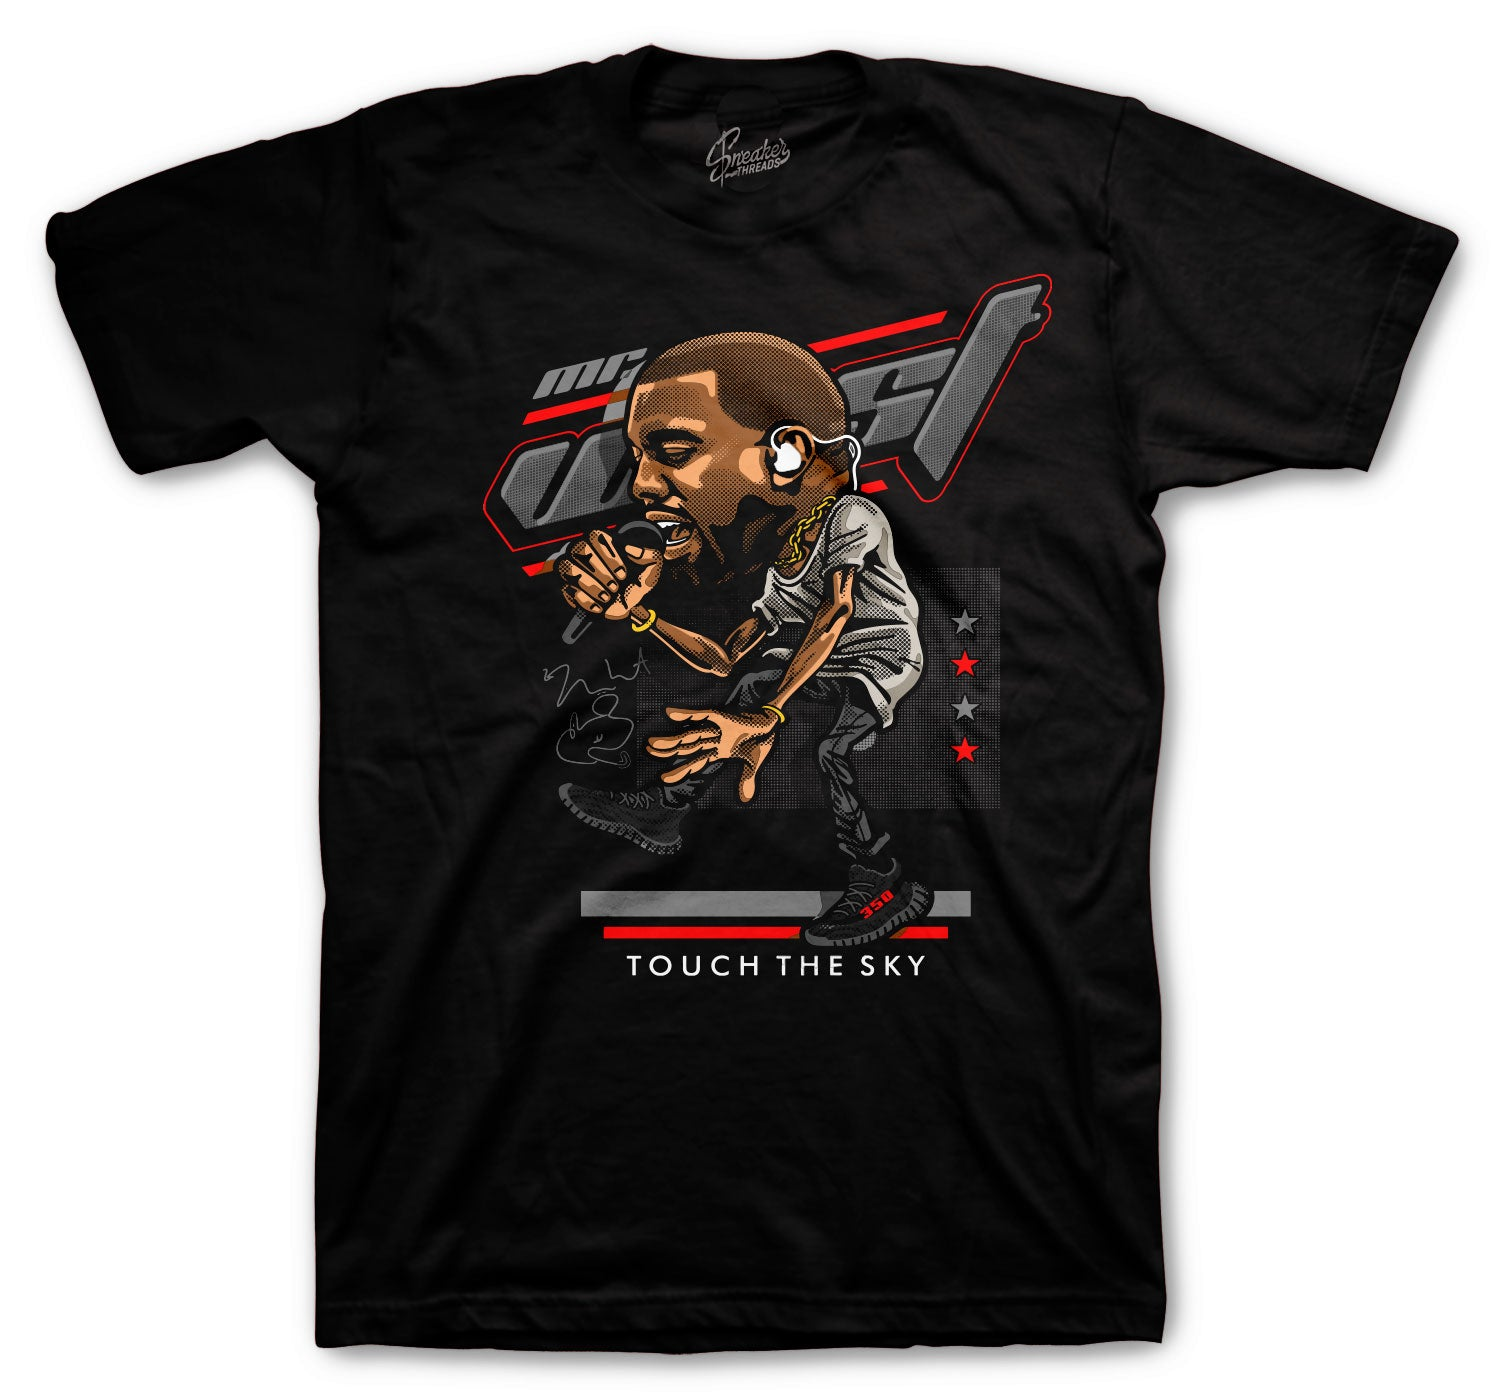 Yeezy 350 Bred Touch The Sky Shirt